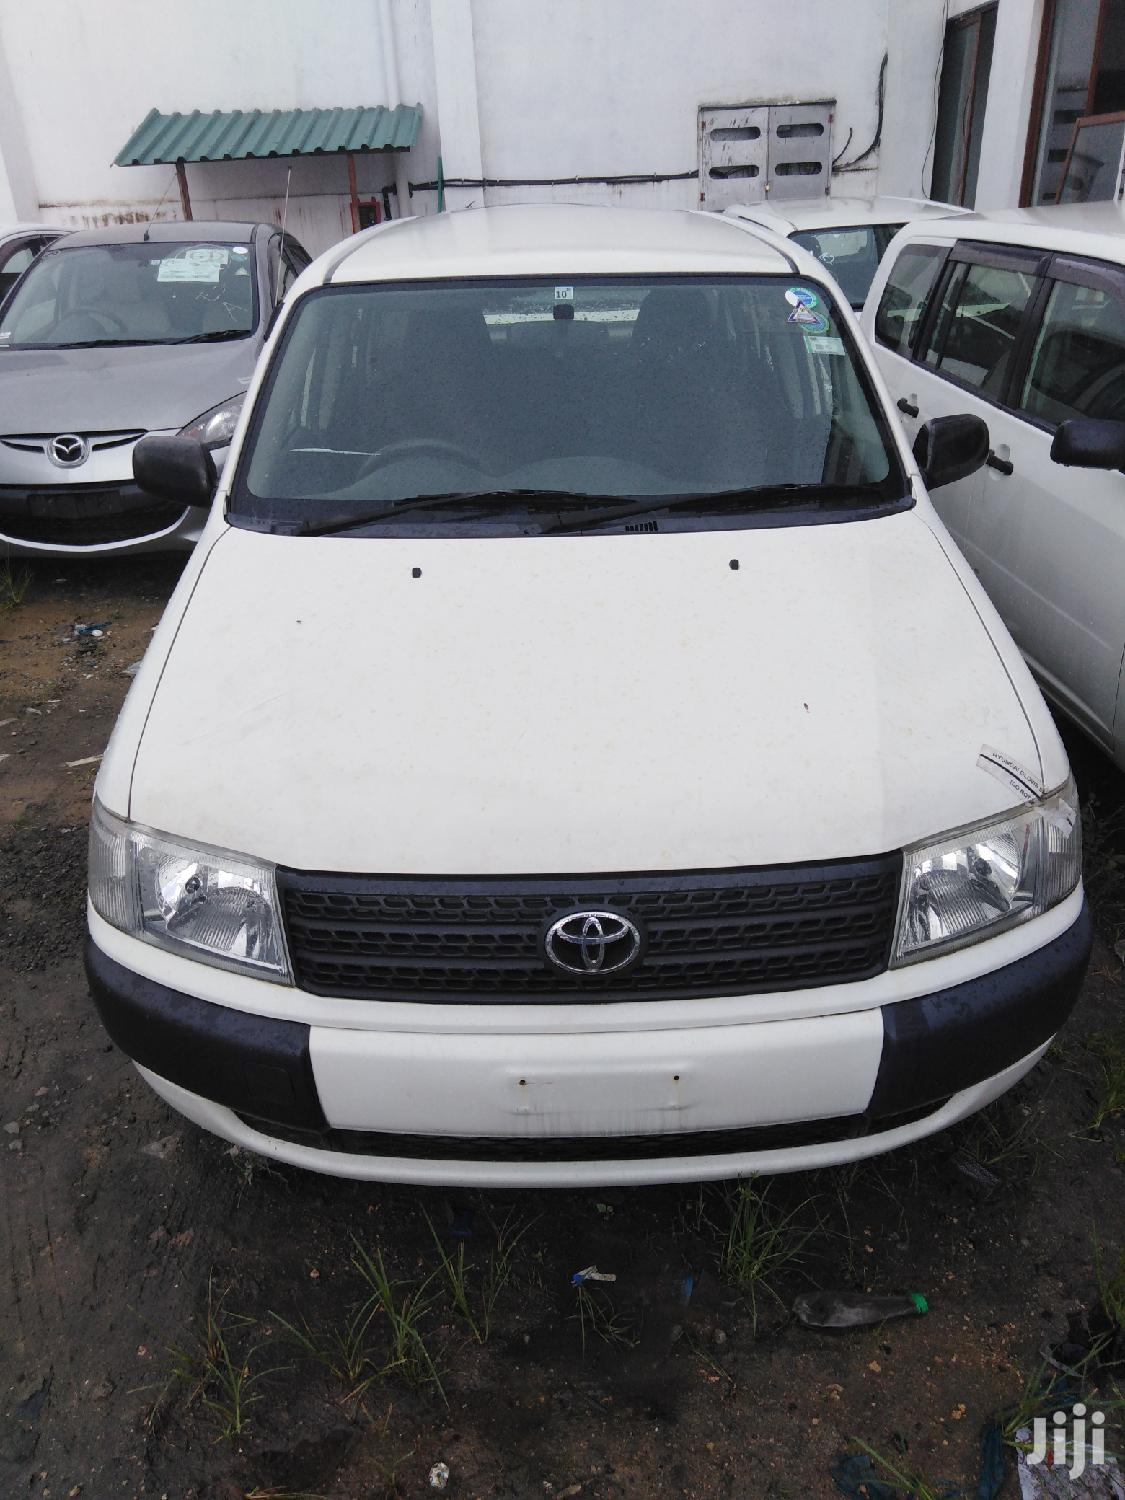 Toyota Probox 2012 White | Cars for sale in Moi Avenue, Mombasa, Kenya